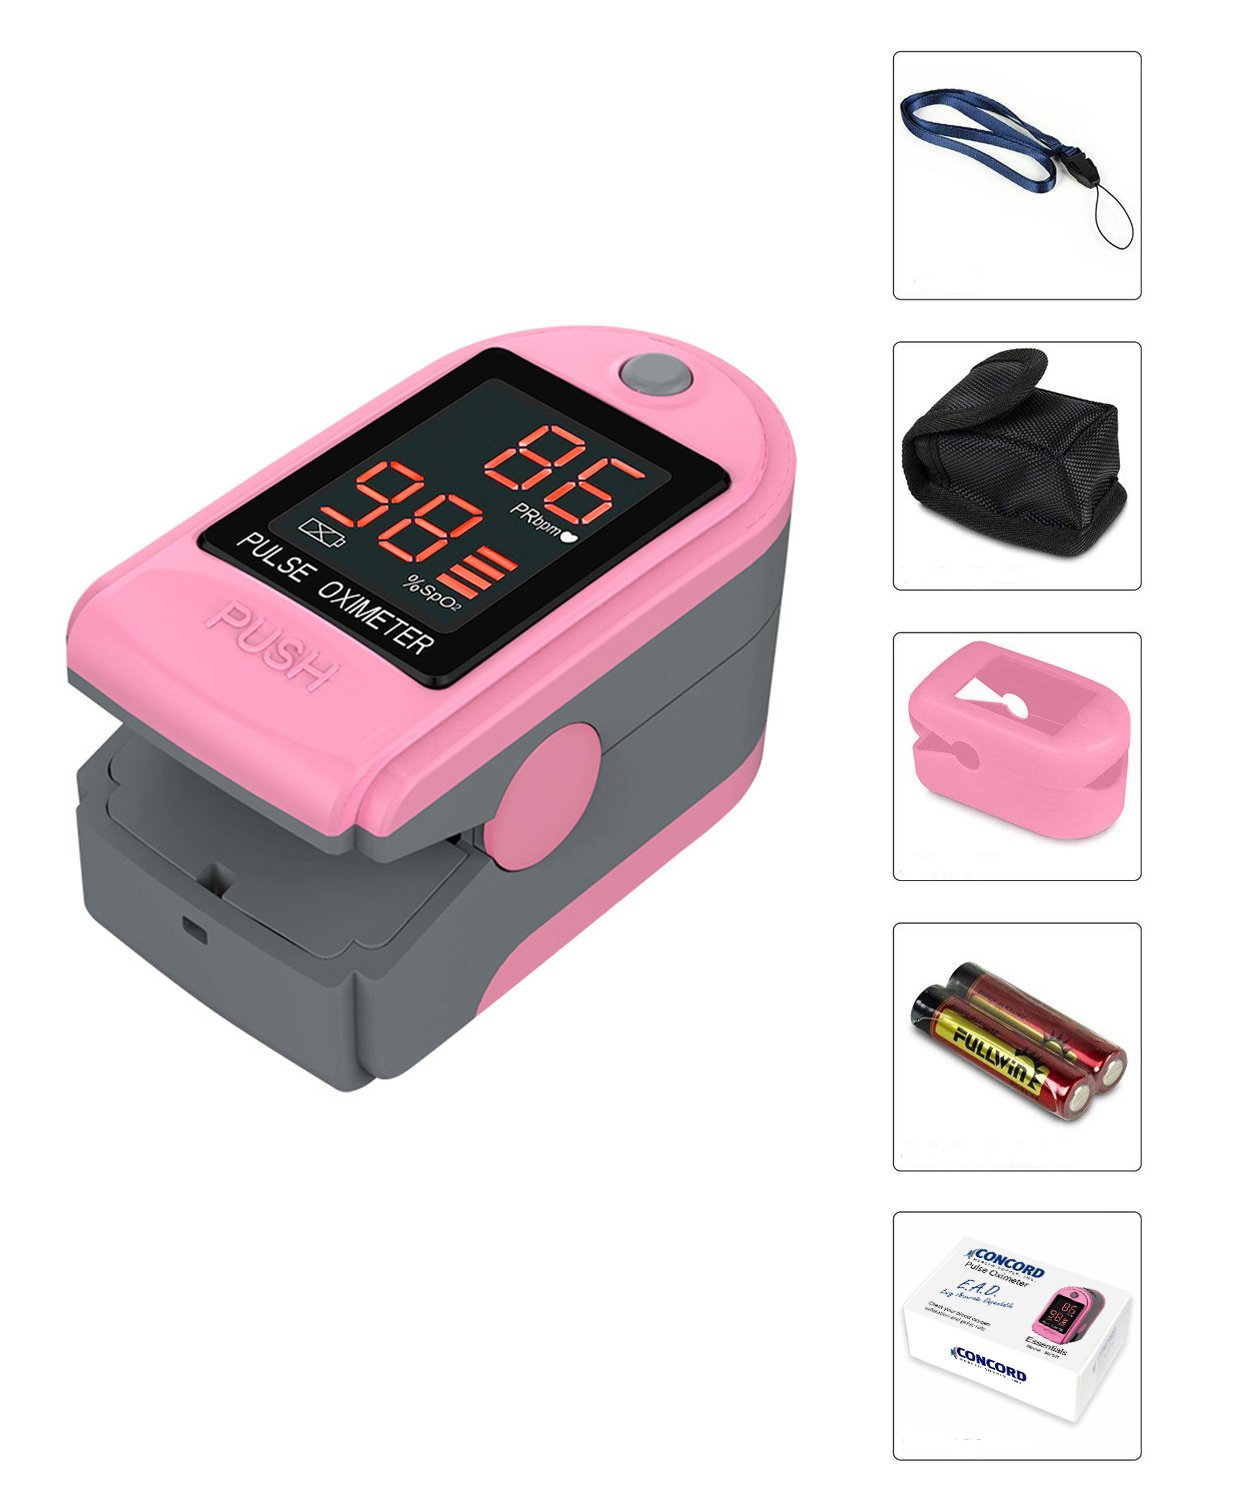 Concord-Health-Supply-EAD-Essentials-Fingertip-Pulse-Oximeter-Blood-Oxygen-Saturation-SpO2-Monitor-includes-silicon-cover-carrying-case-batteries-and-lanyard